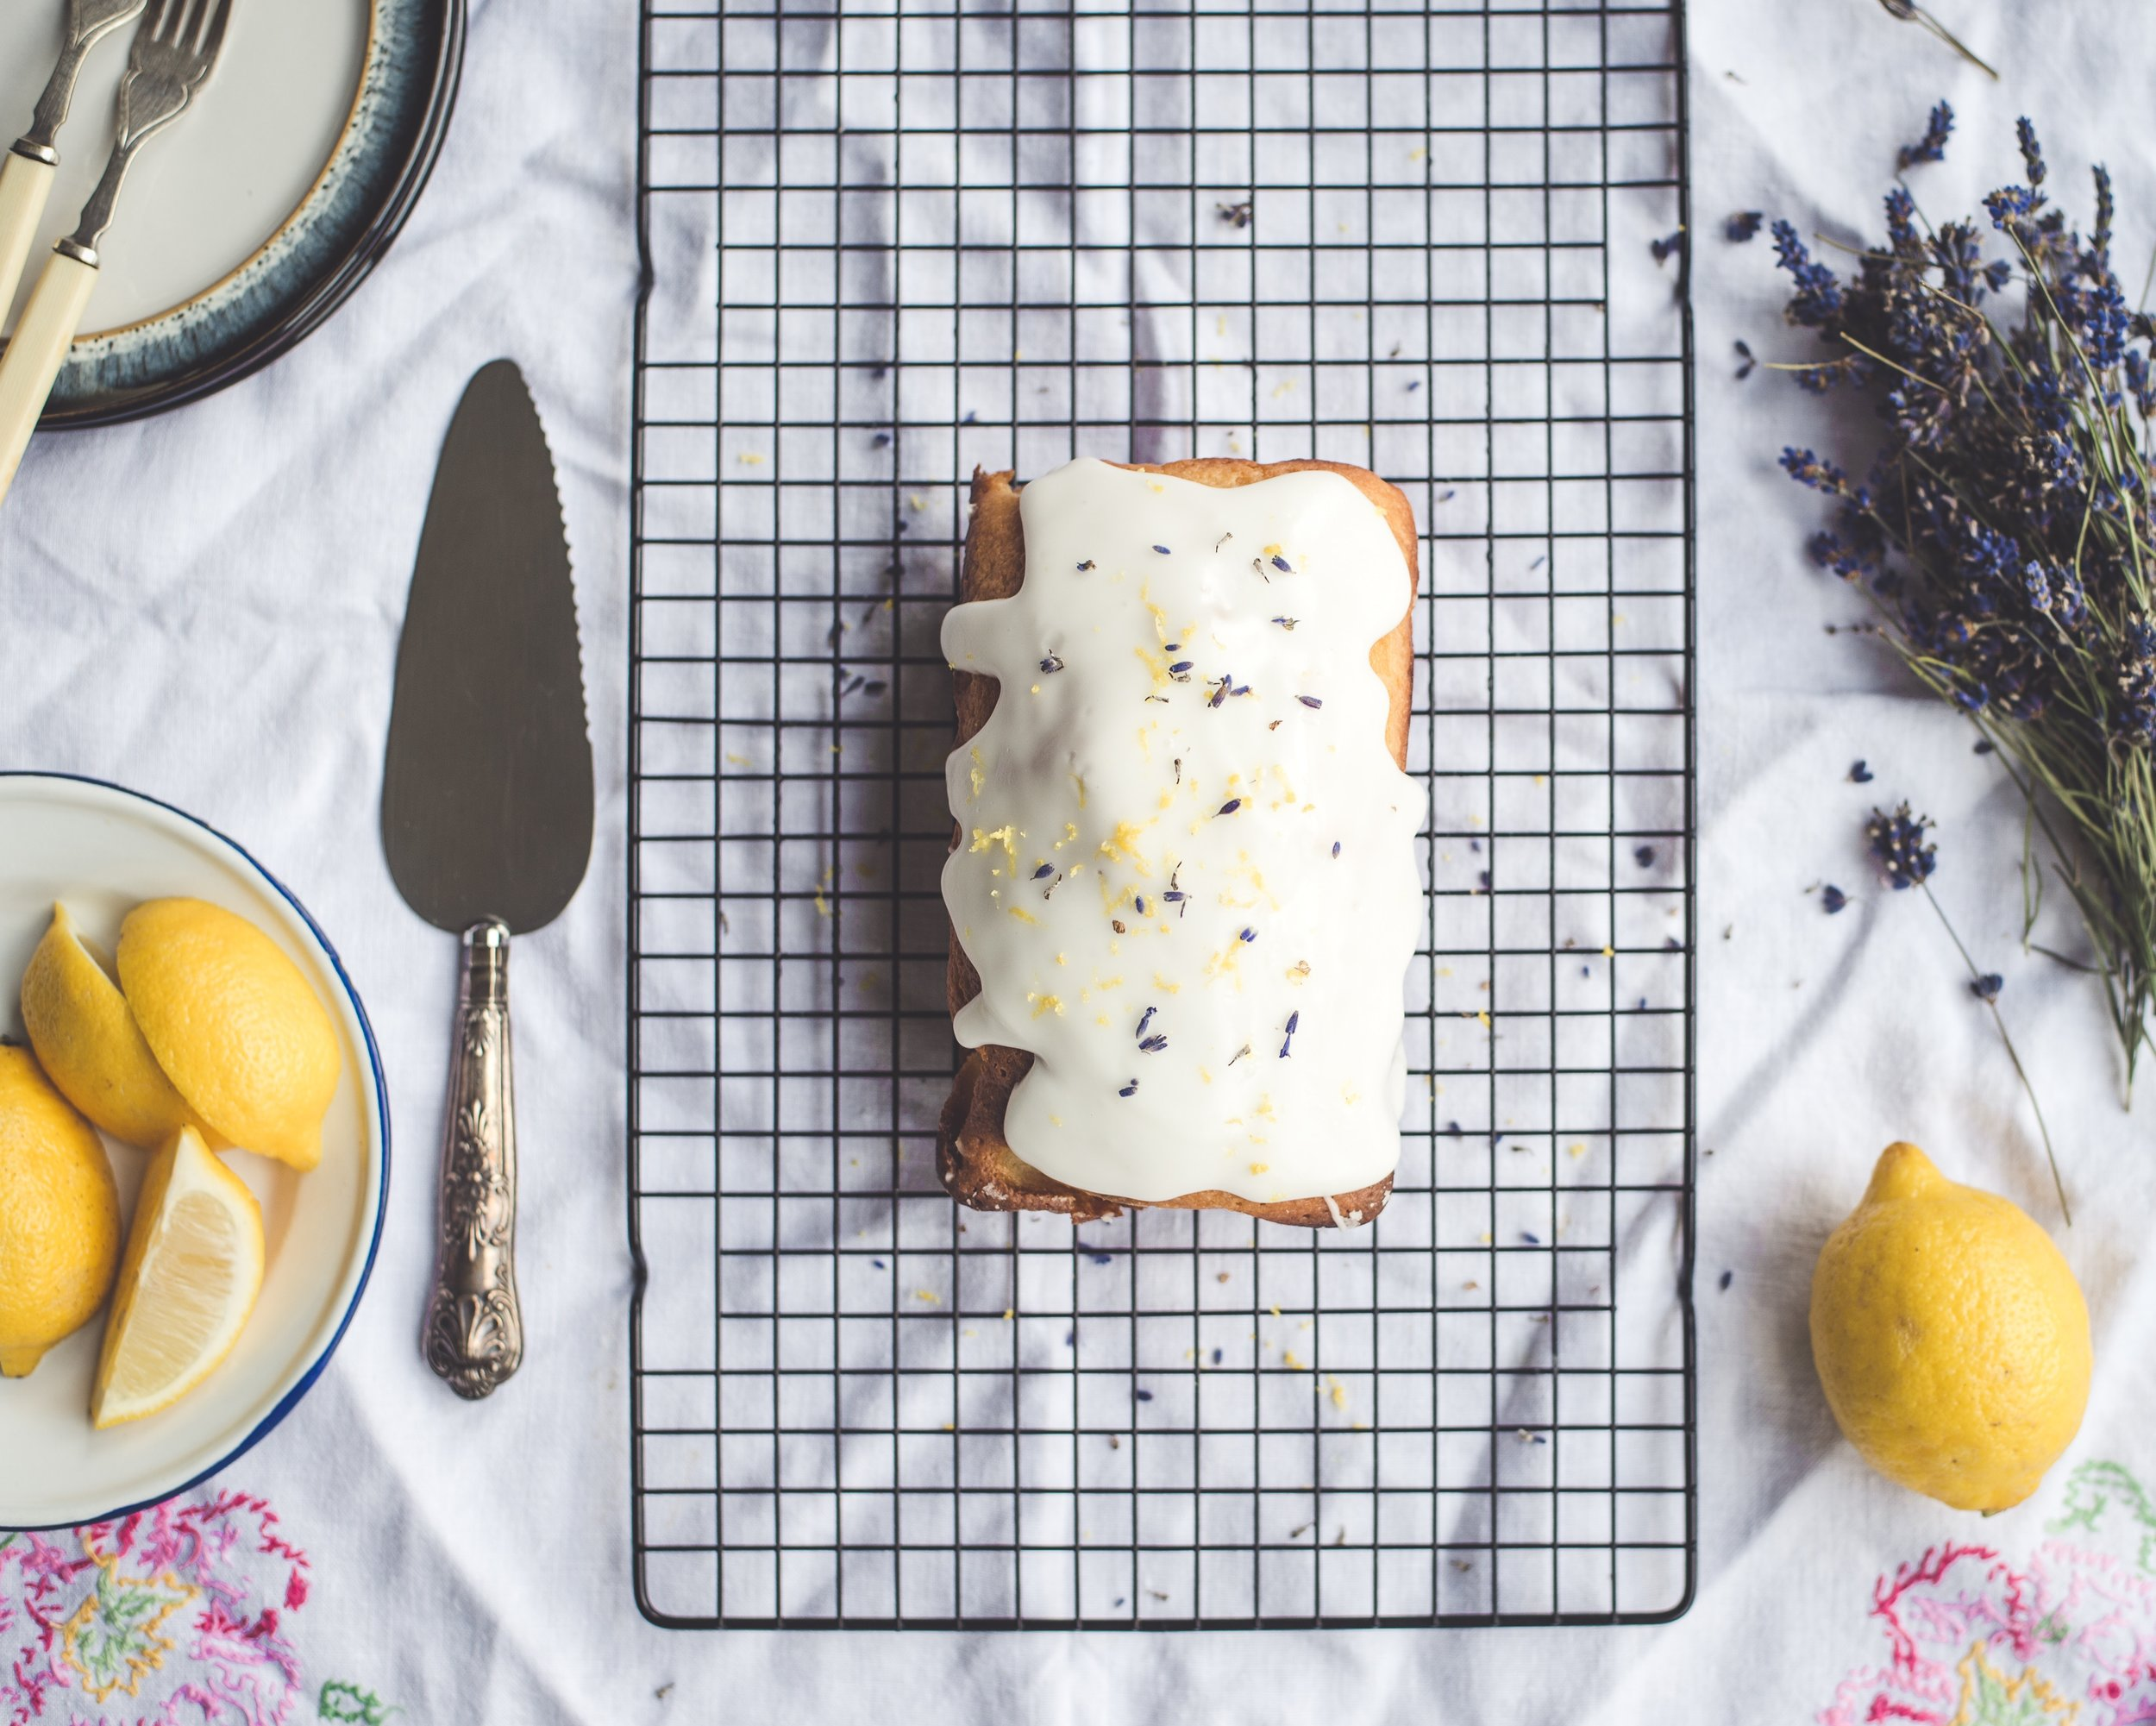 Lavender adds a lovely soft floral flavor to baked goods. The flower buds are edible.